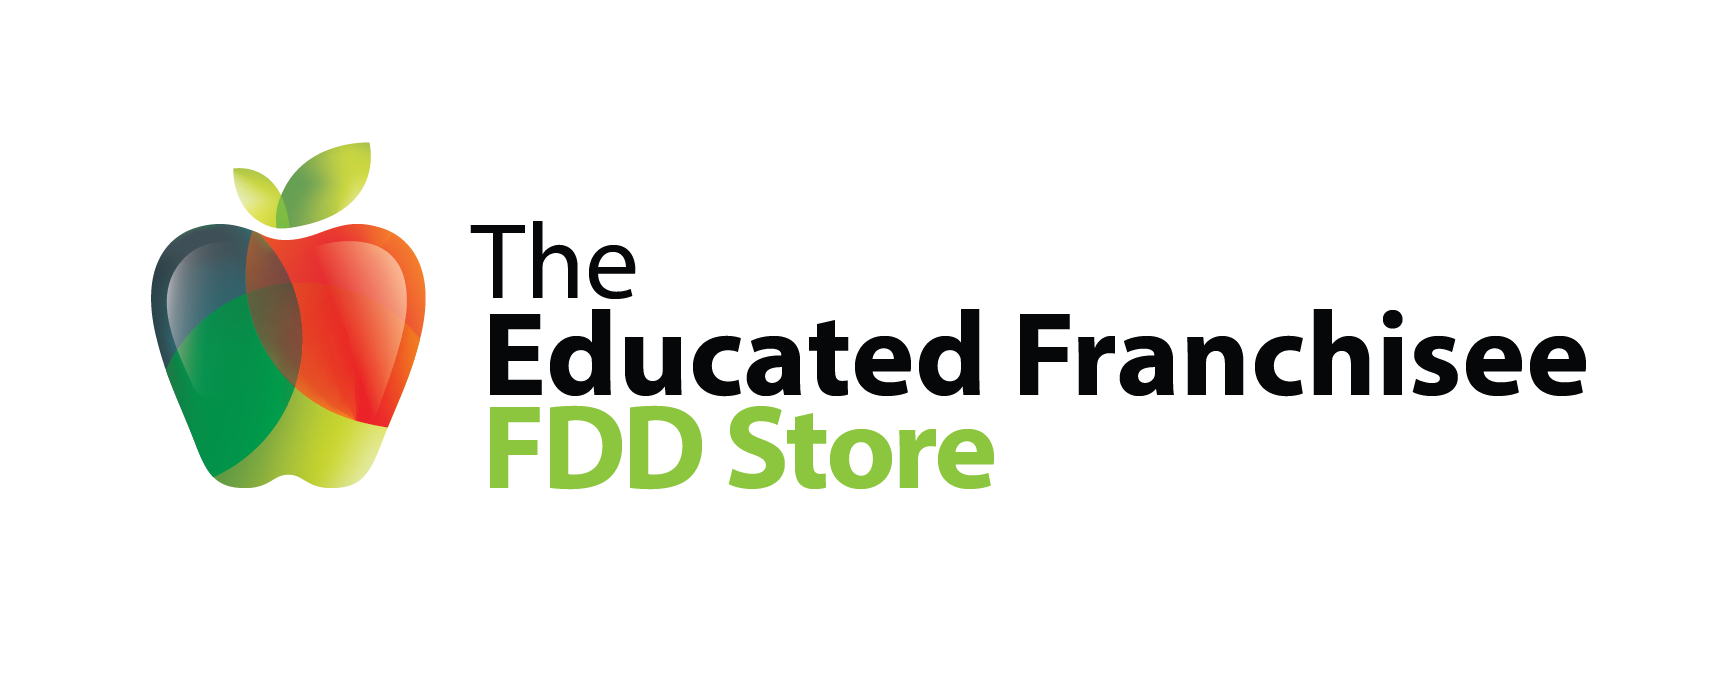 https://fddexchange.com/wp-content/uploads/2017/09/EF_FDDStore.png